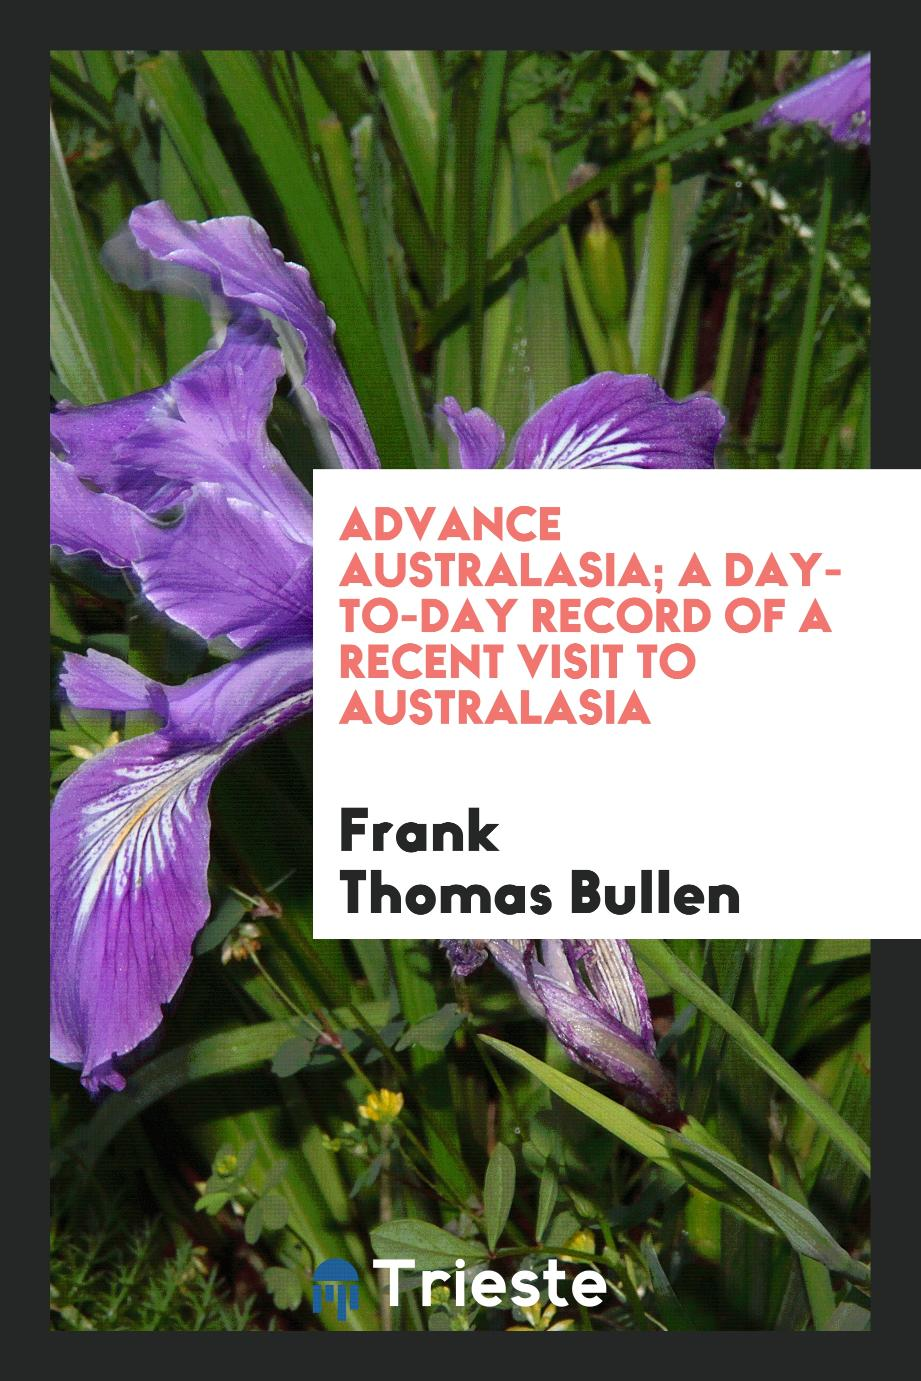 Advance Australasia; a day-to-day record of a recent visit to Australasia